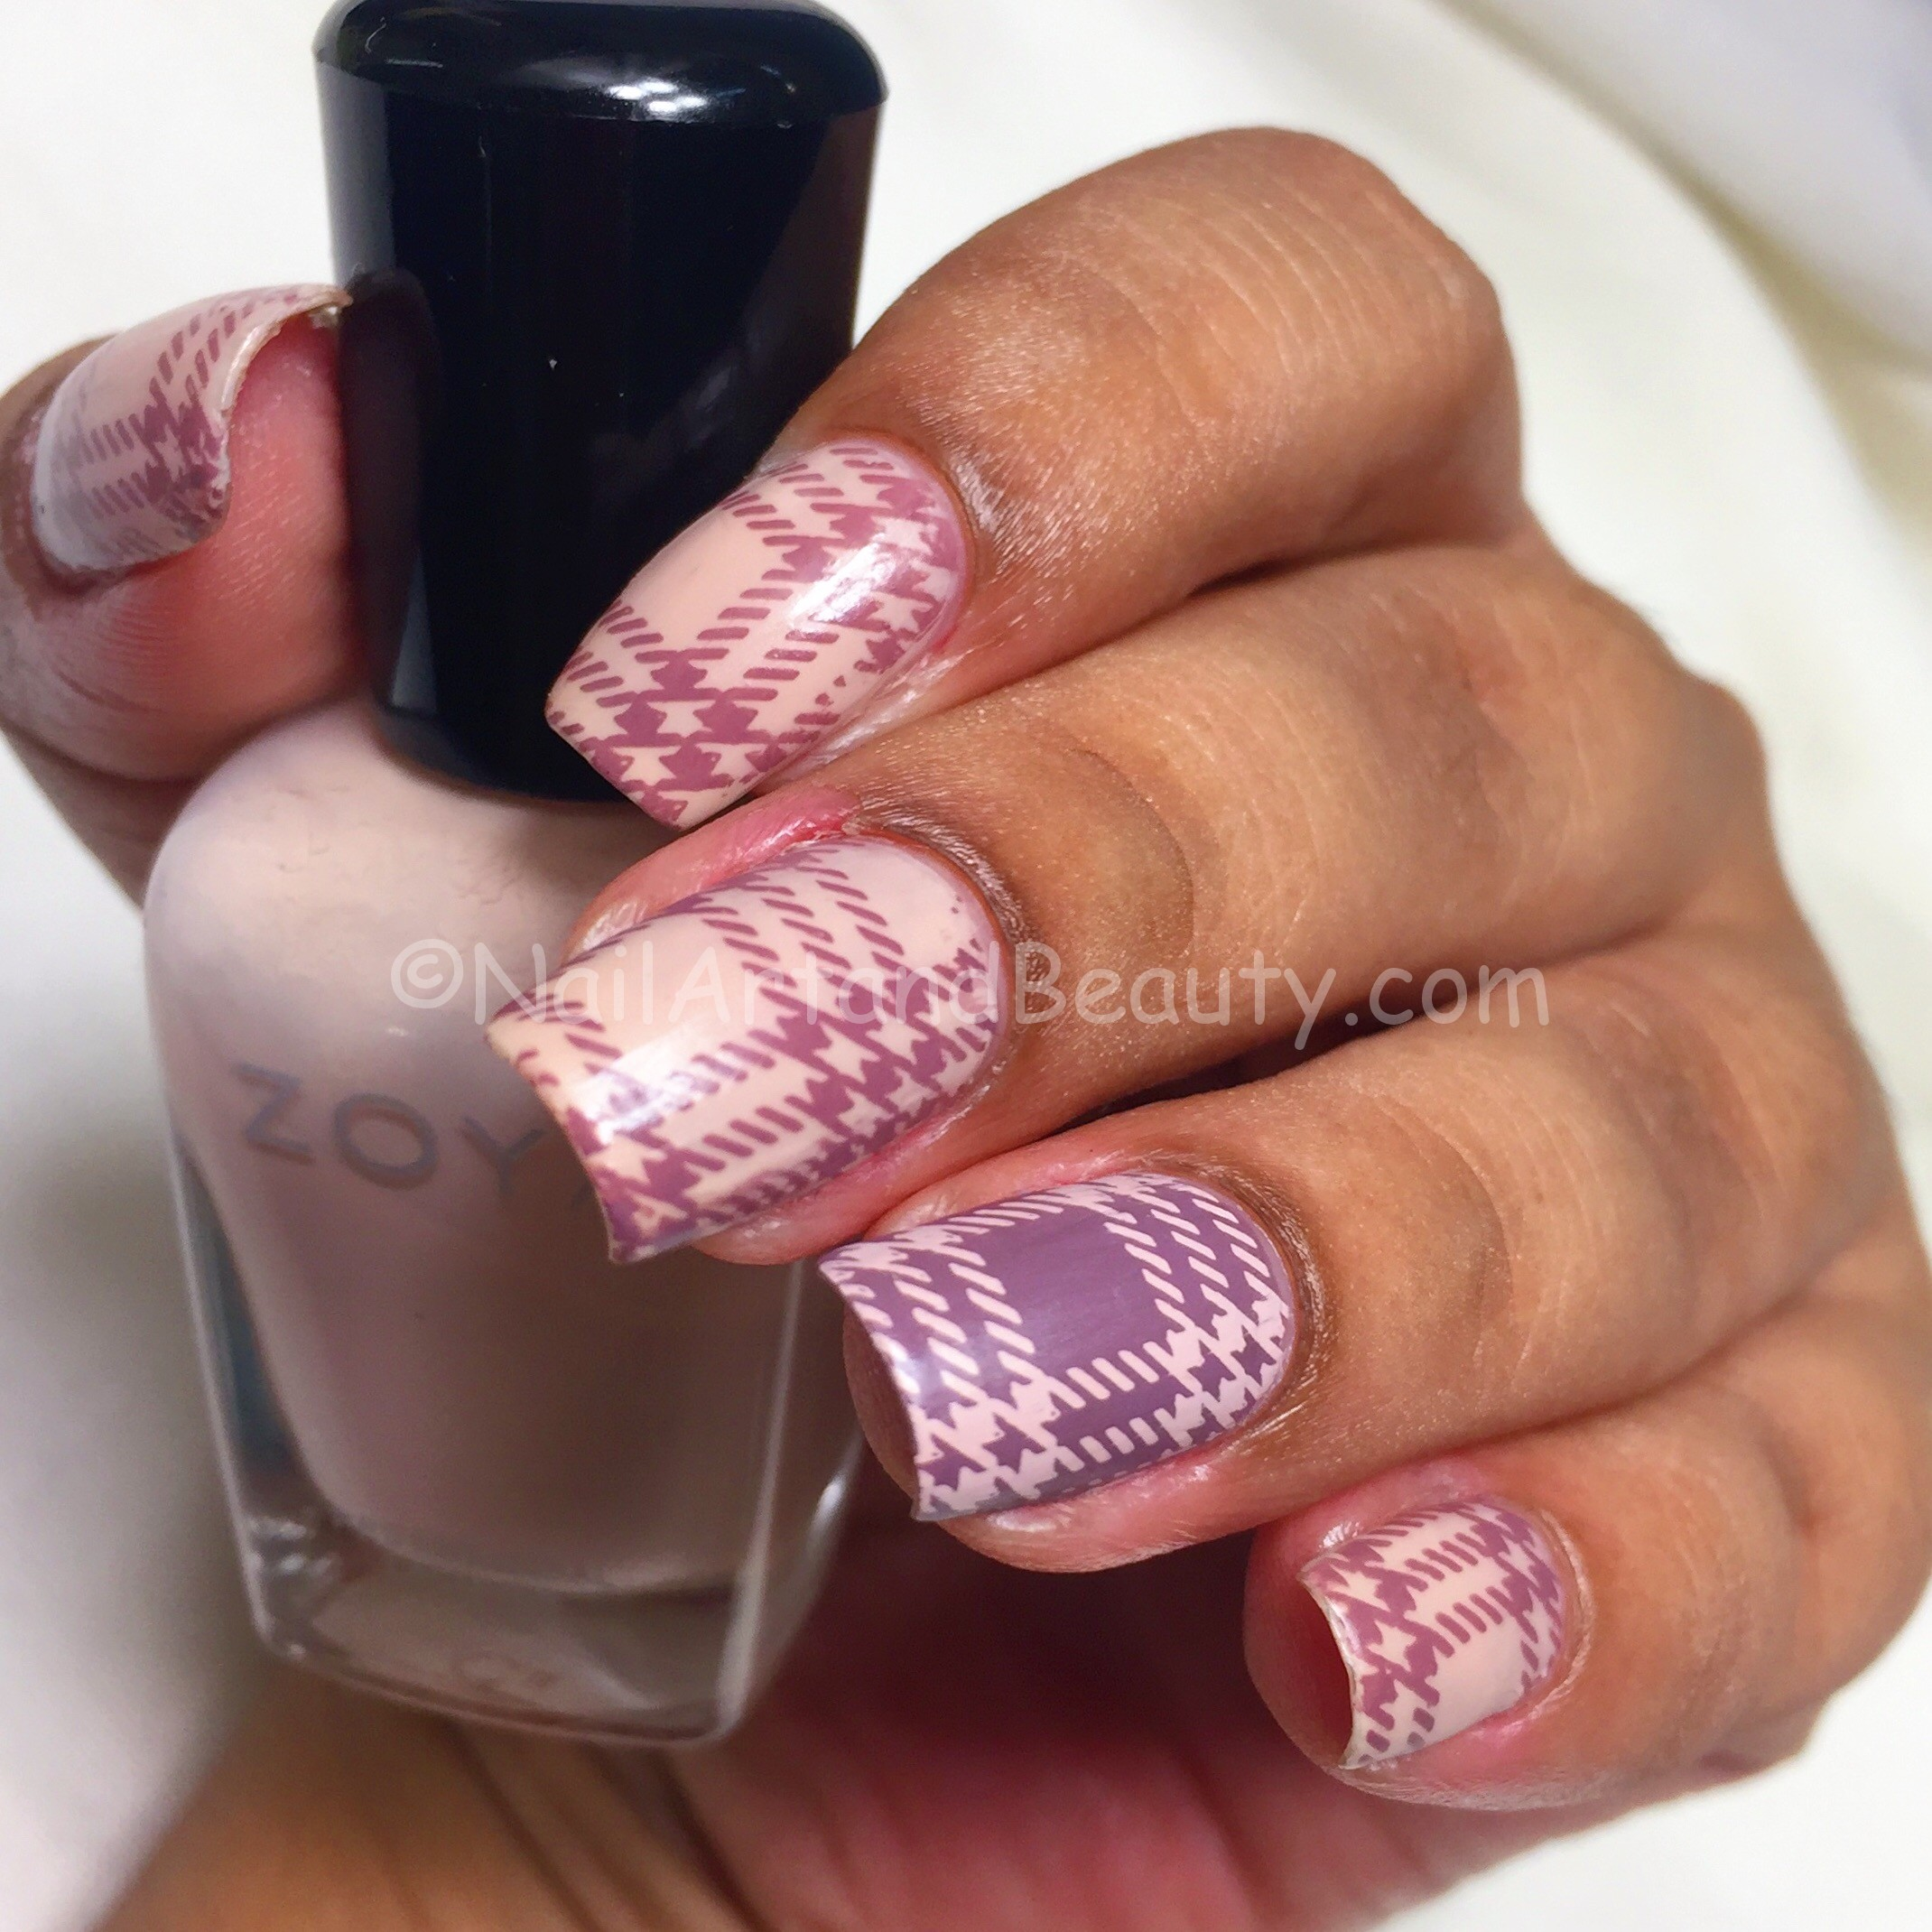 Soft Plaid Nails